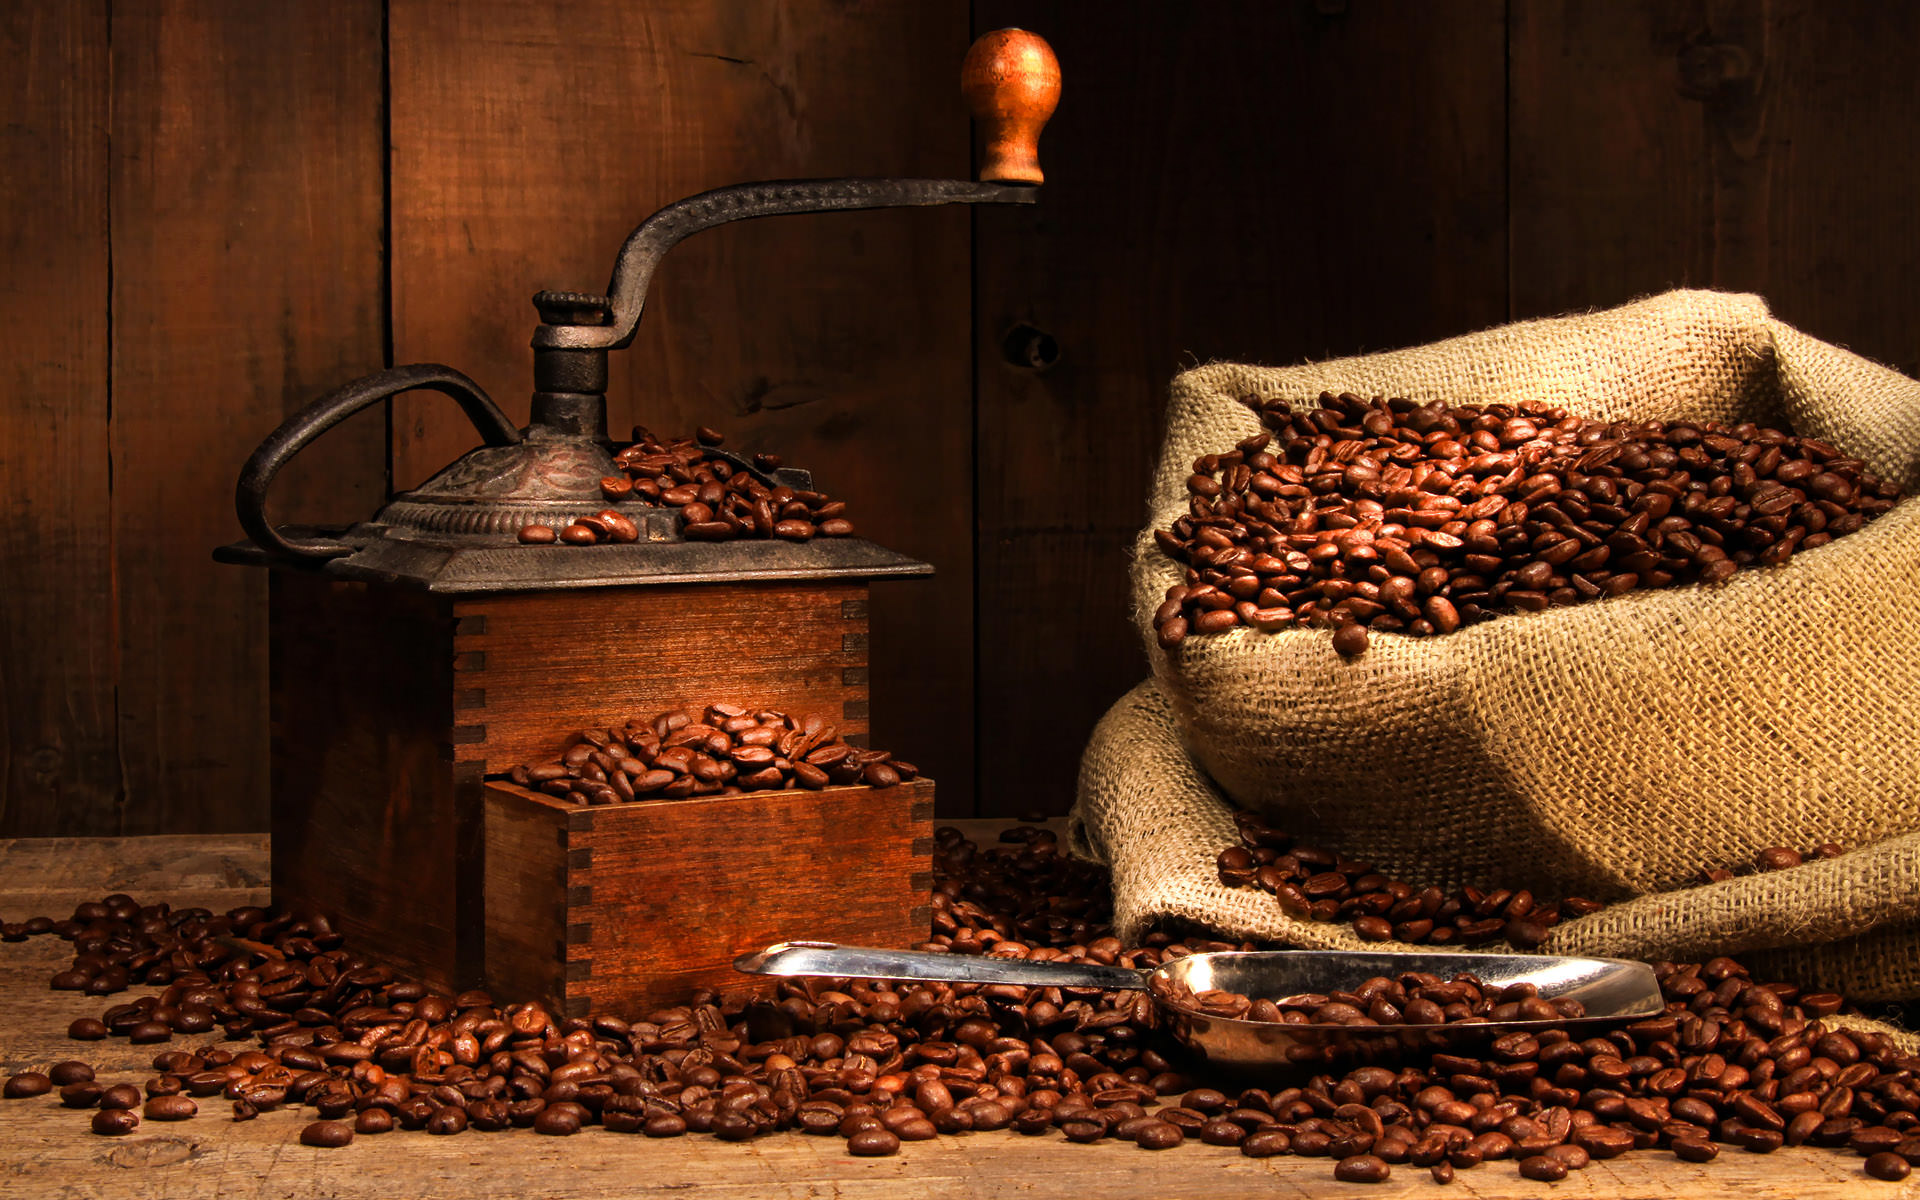 Food Coffee Wallpaper